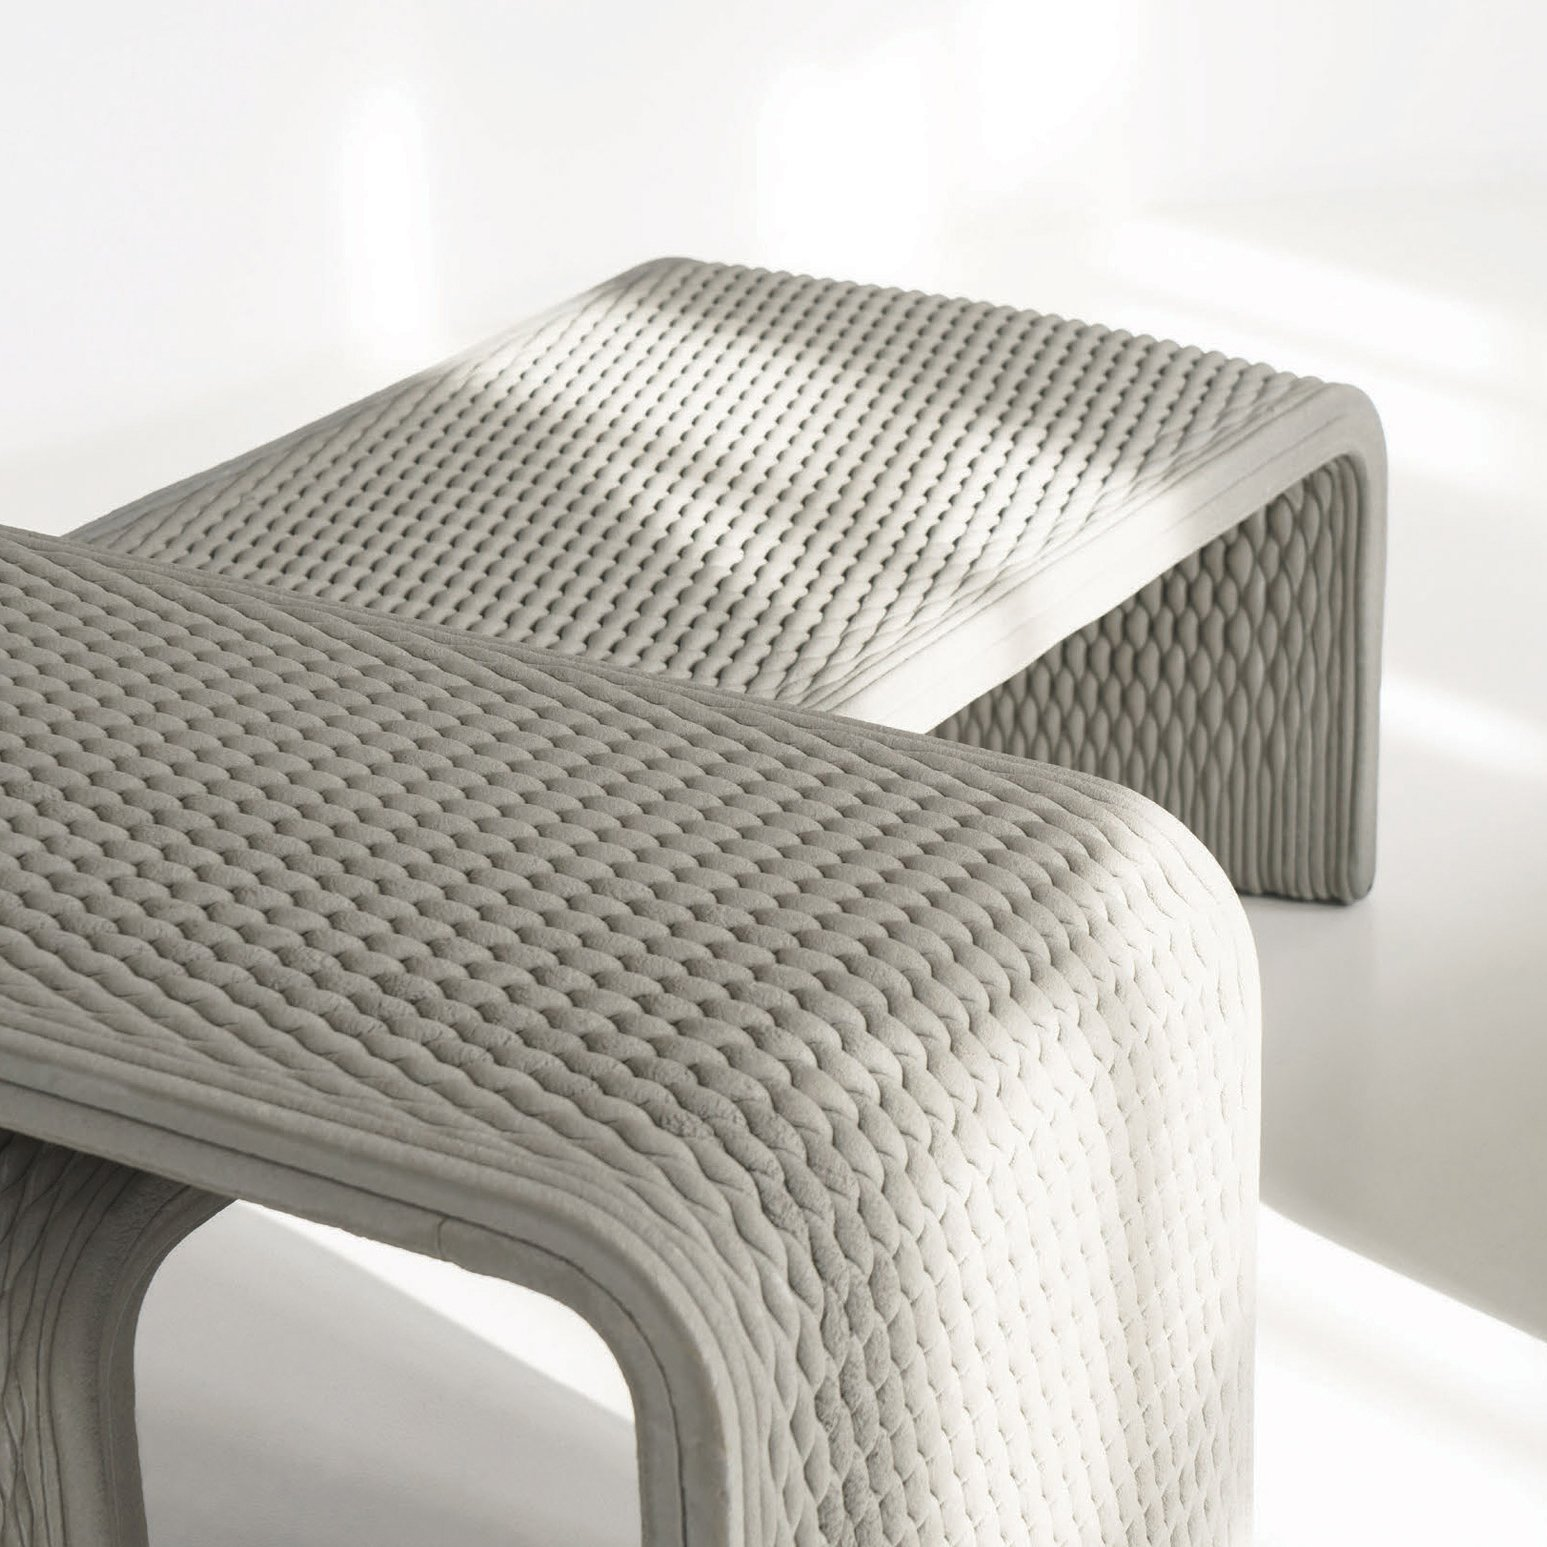 Collection Of Benches Woven In 3d Printed Concrete